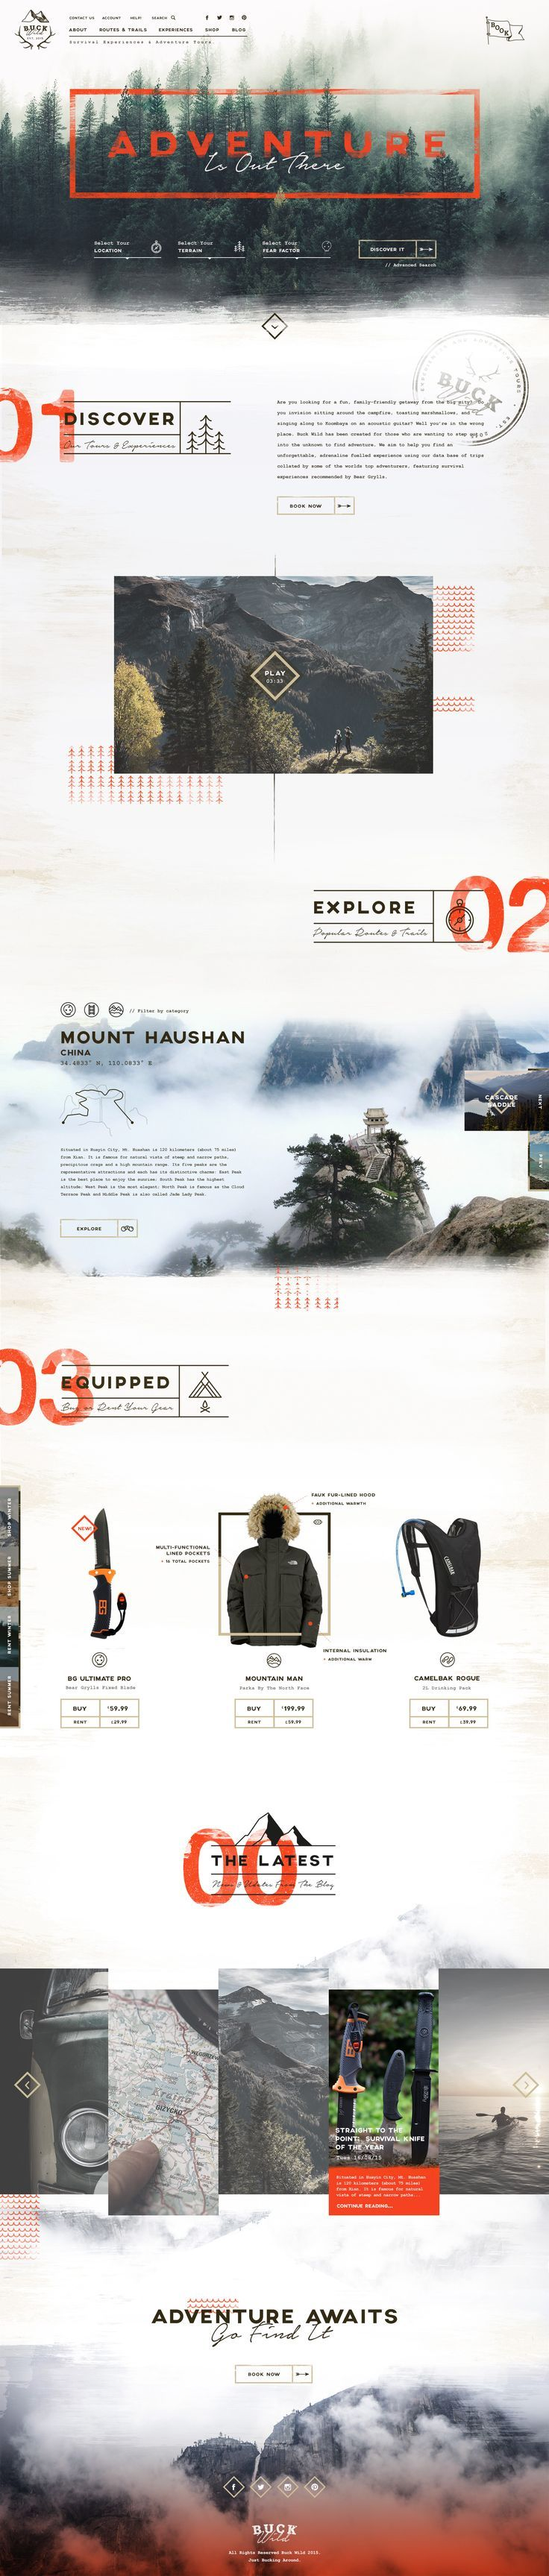 Web design inspiration | #1278